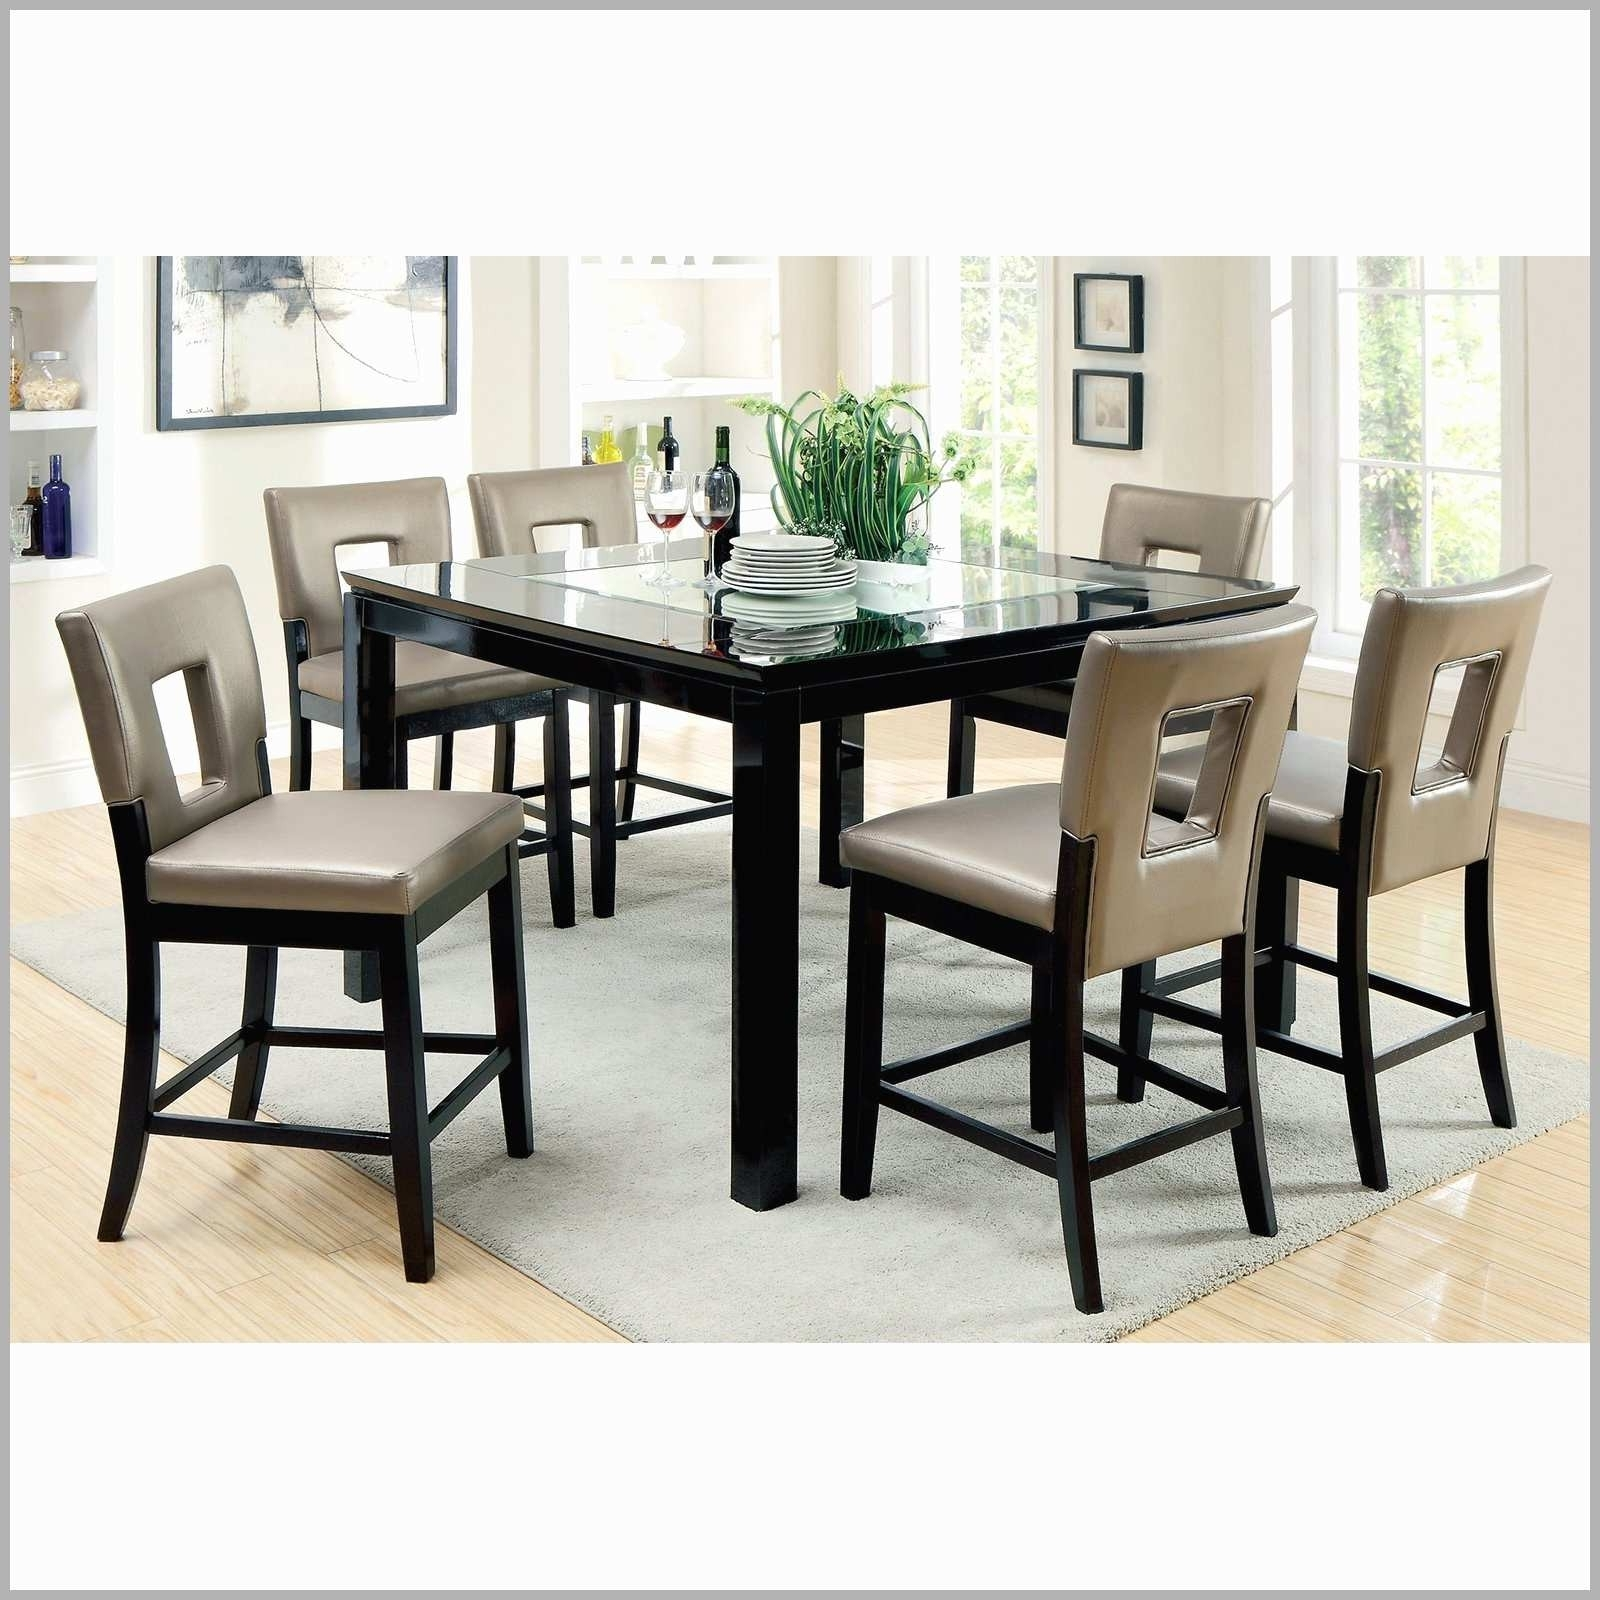 Cheap Dining Table Sets Near Me Awesome 8 Seater Dining Table Set Throughout Newest Dining Tables Set For  (View 3 of 25)